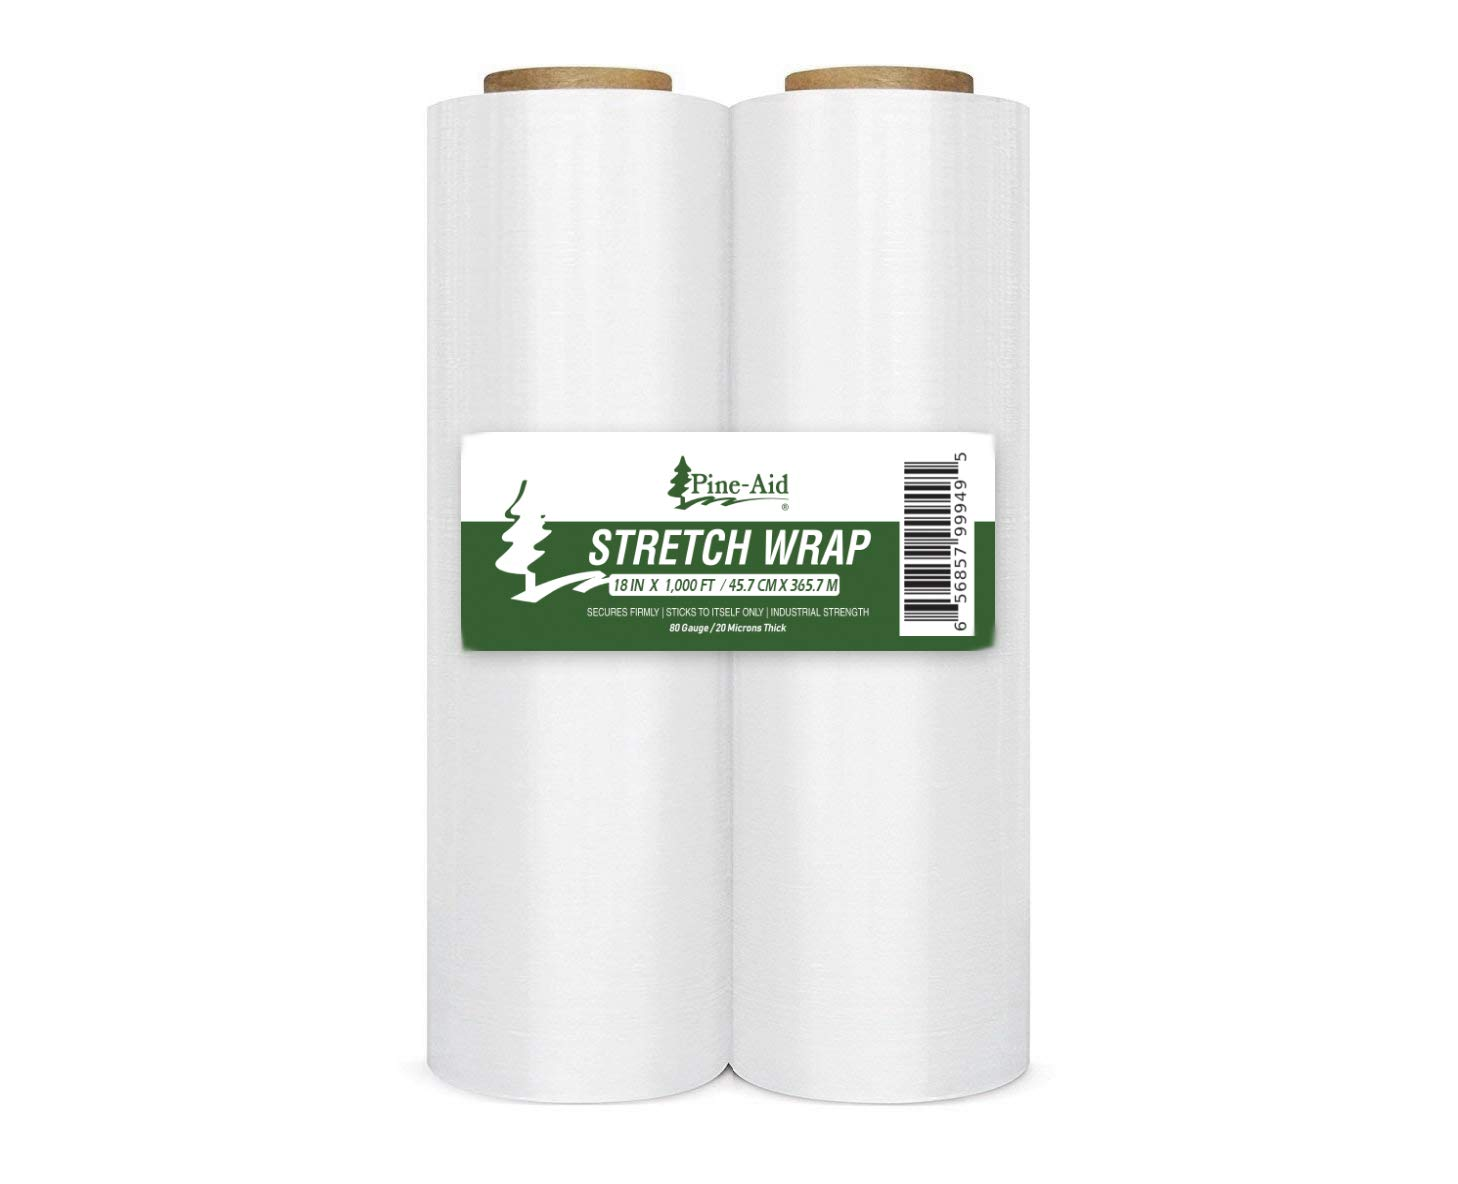 Stretch Wrap - 18'' X 1000 Sq Ft X 80 Gauge (20 Microns) Industrial Strength Thick & Most Durable, Self-Adhesive Film - Cling/Shrink/Pallet Wrap Best for Packing and Moving (2)